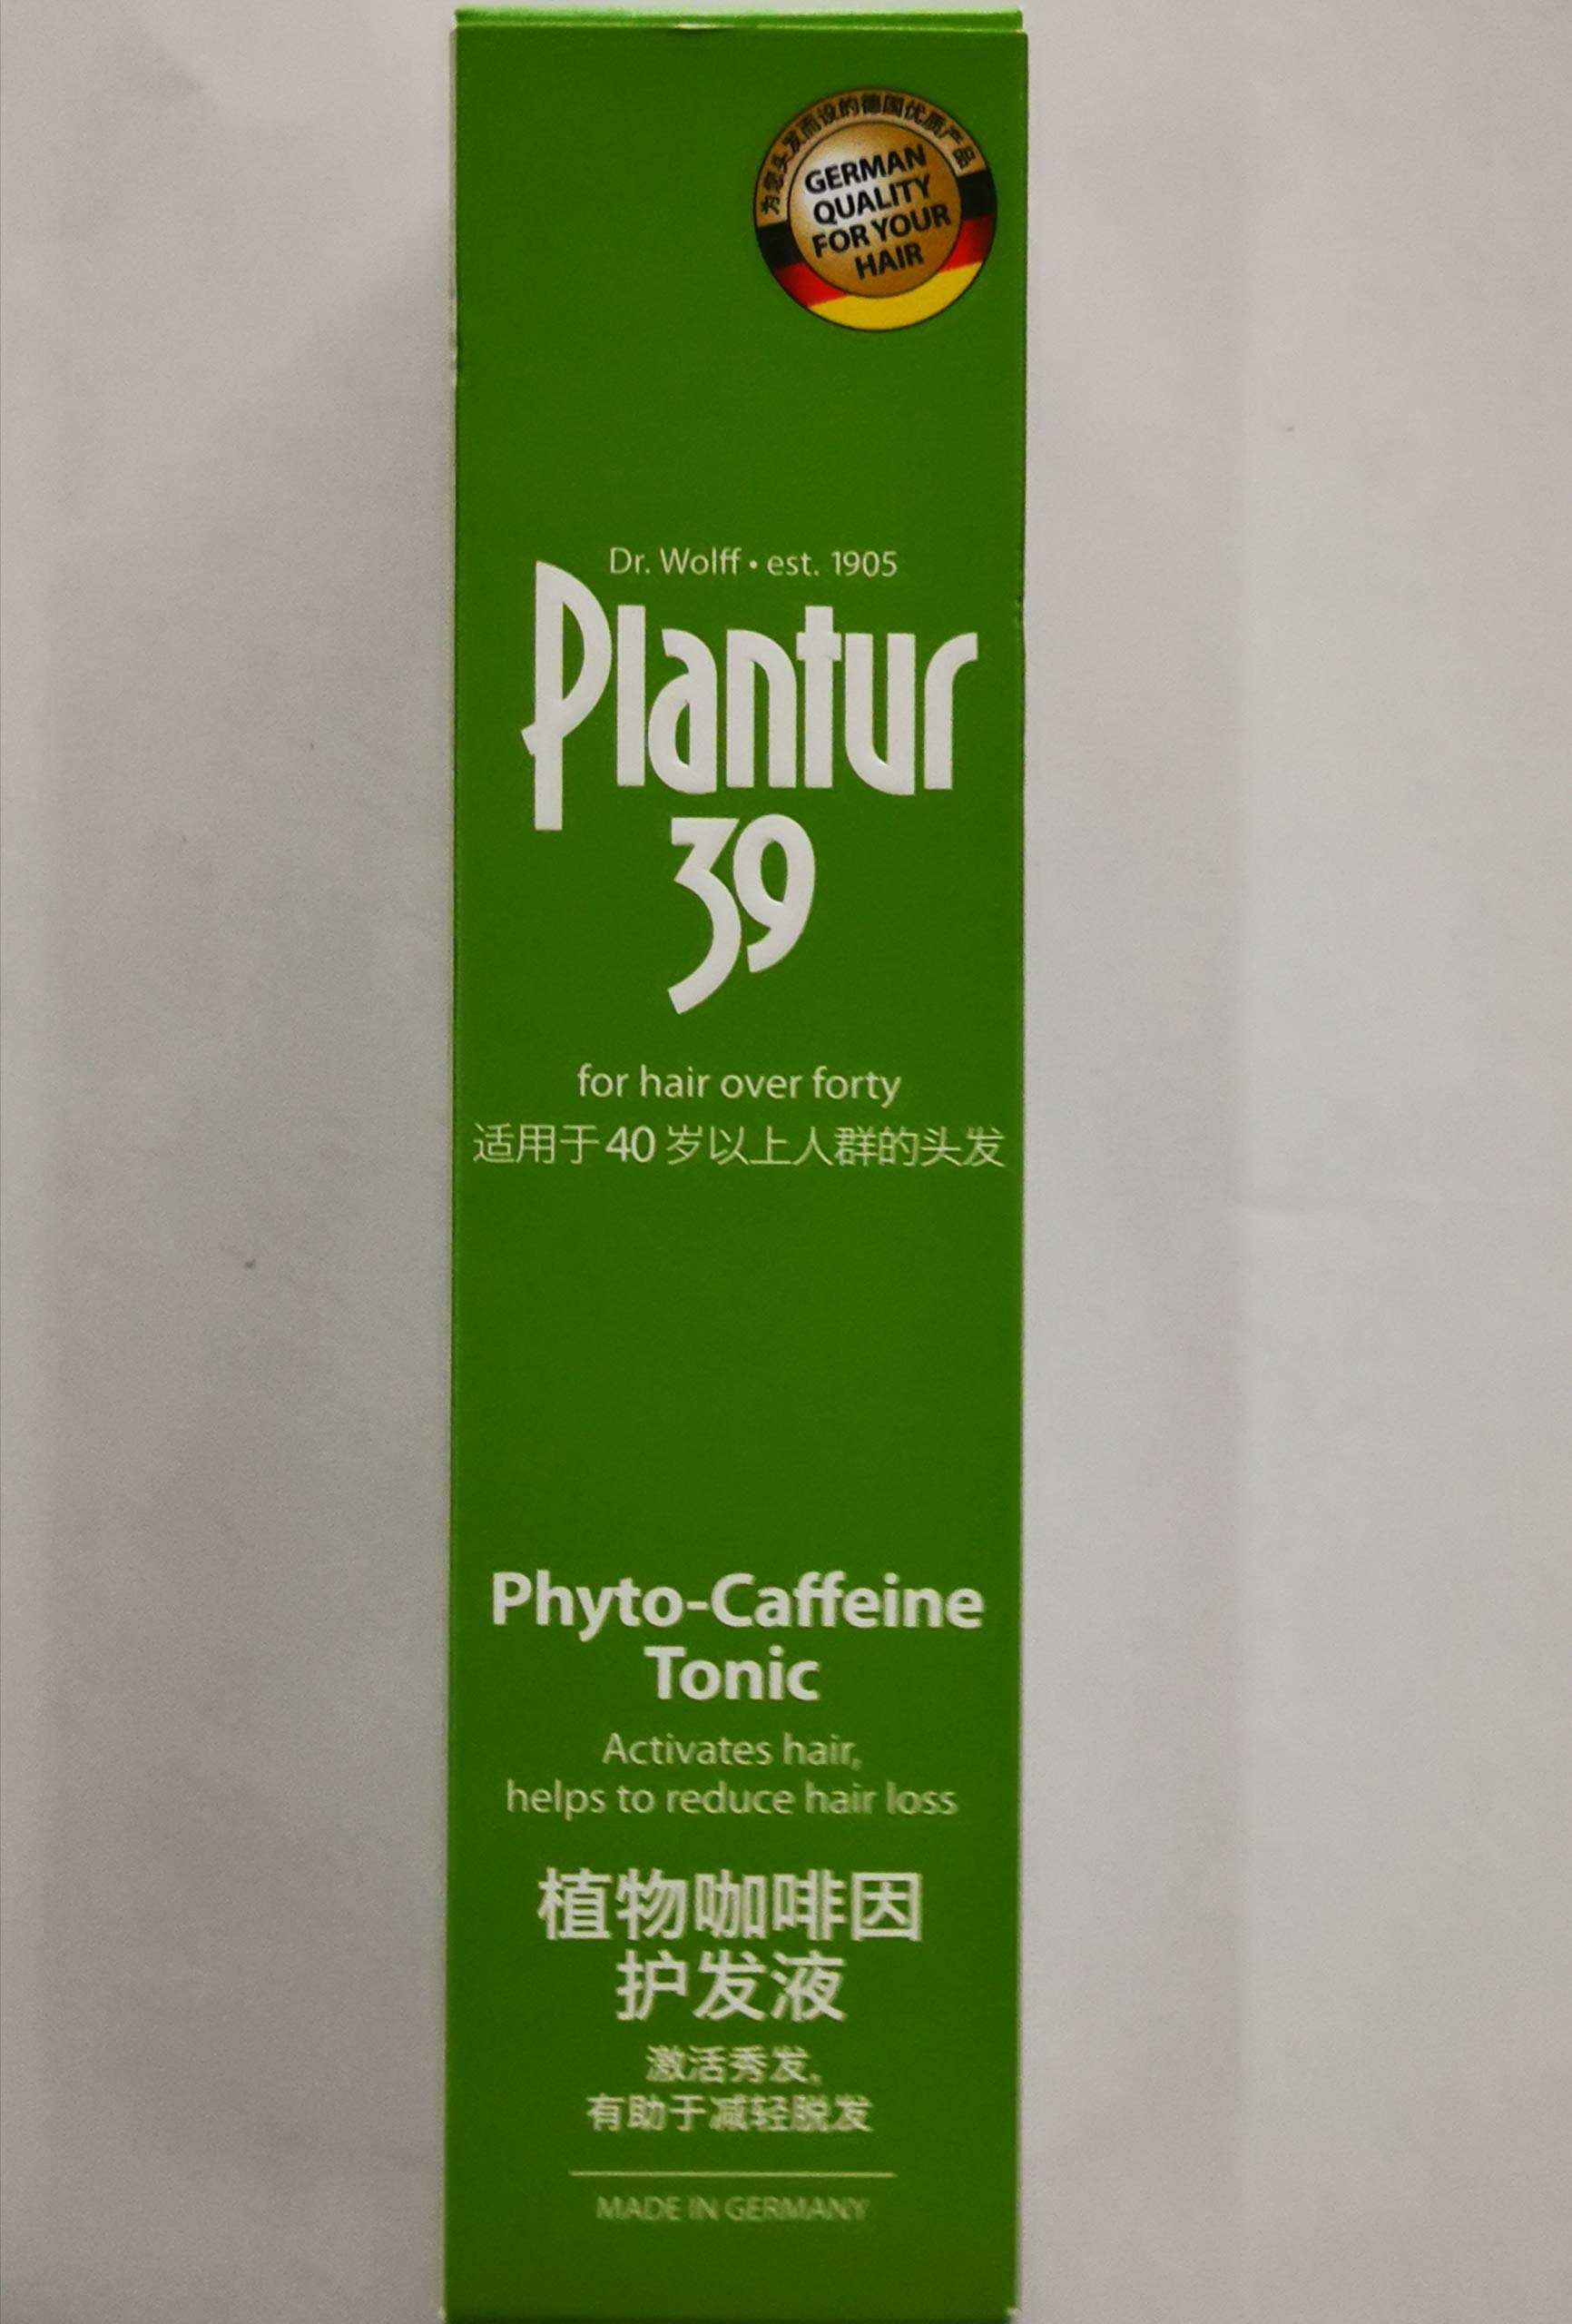 PLANTUR 39 Tonic 200ml - Helps to Prevent Premature Exhaustion of Hair Growth by PLANTUR 39